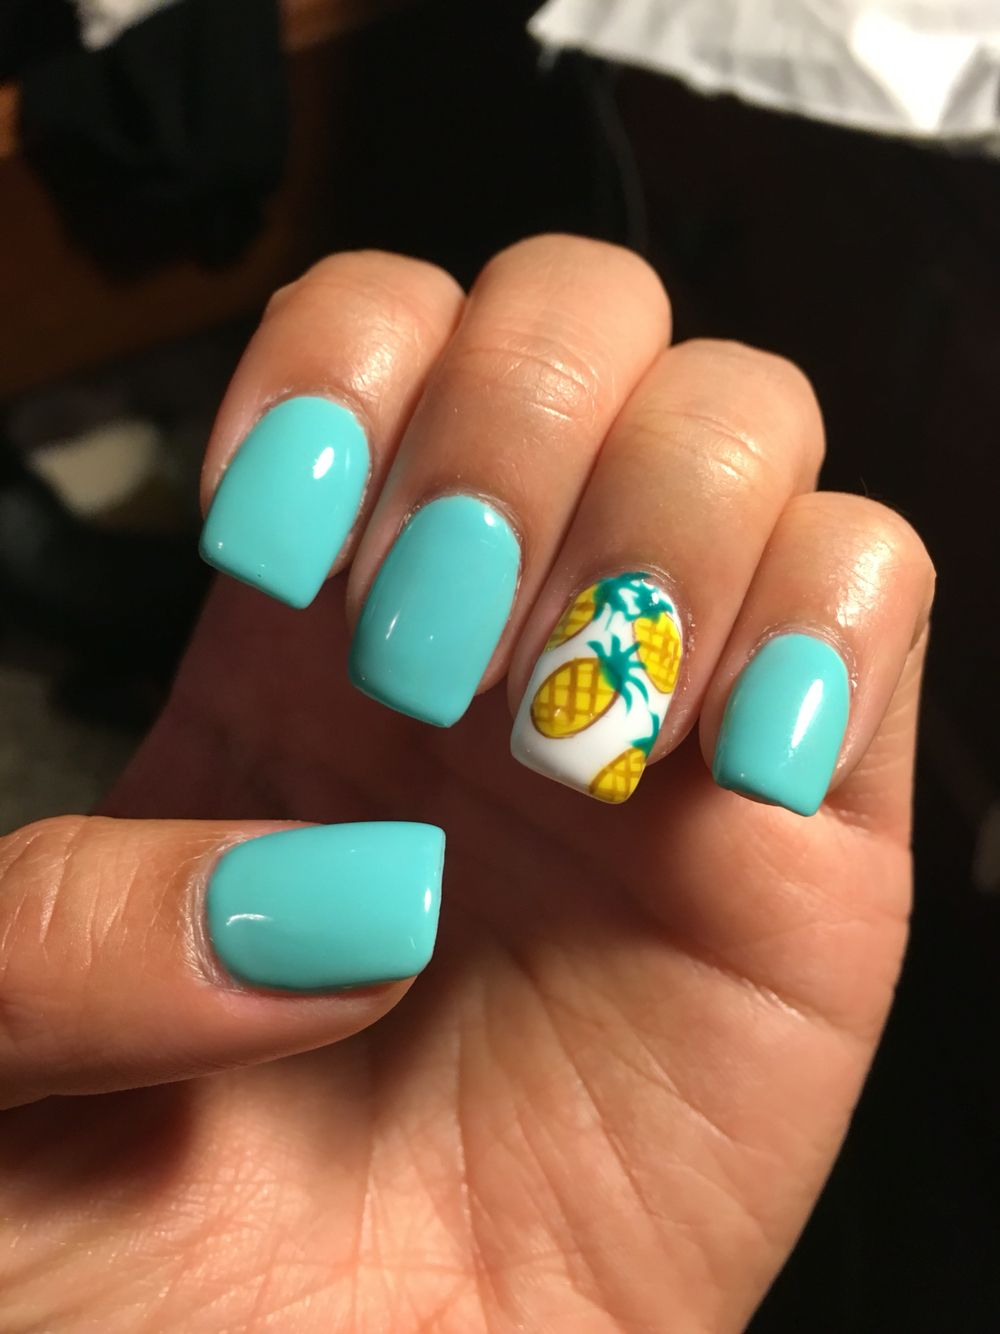 Summer Nails Teal Acrylics With Pineapples My Nails Pinterest